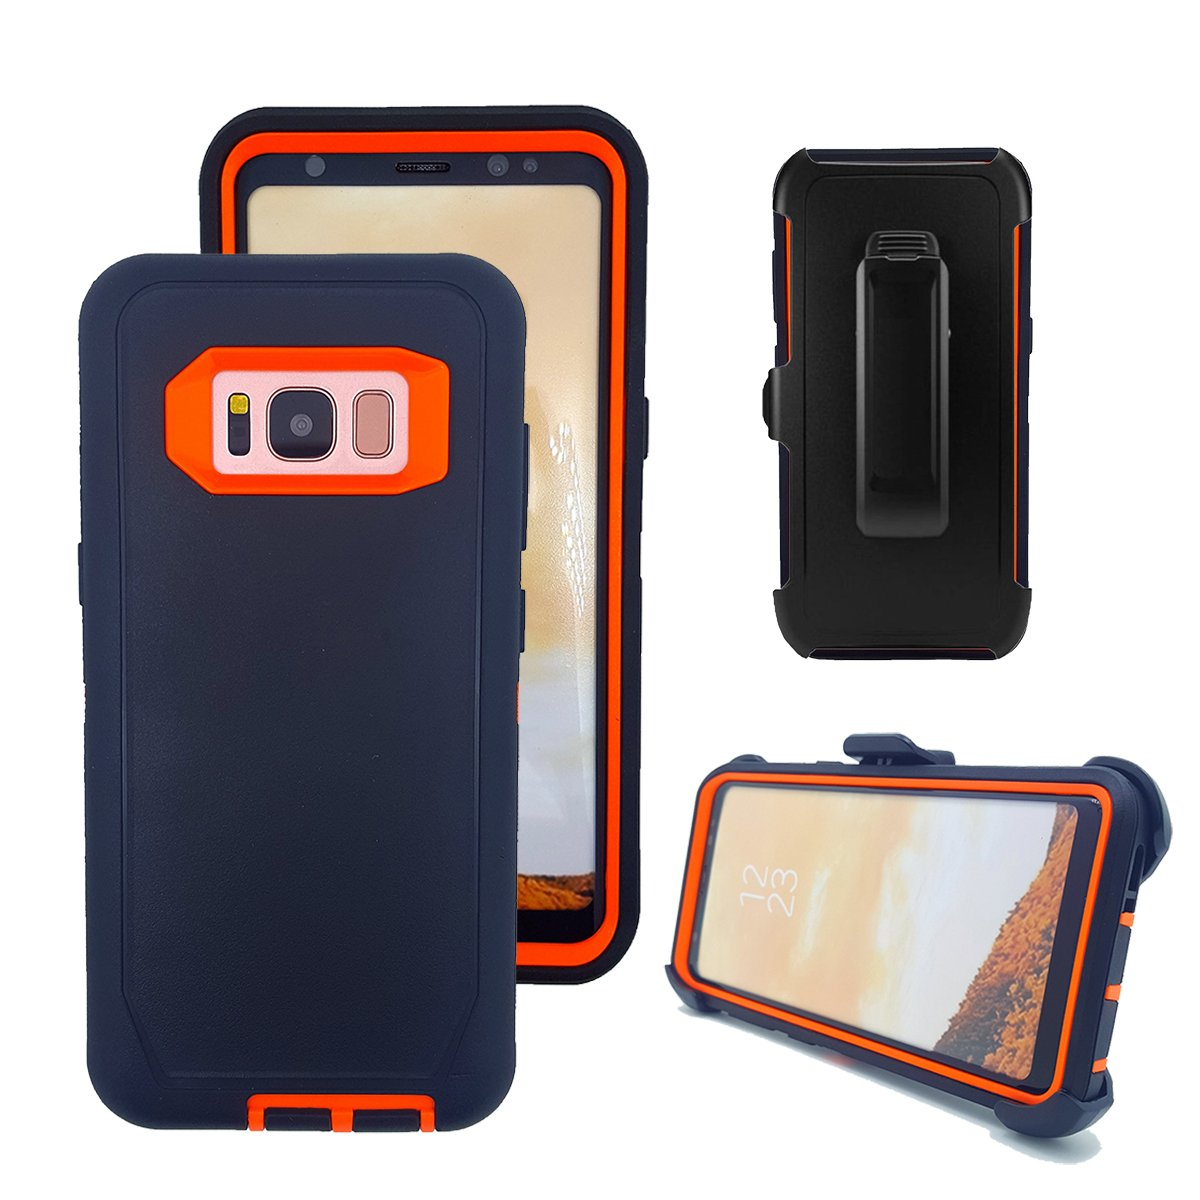 Galaxy S8 Case, Harsel Triple Layer Defender Series Heavy Duty High Impact Tough Rugged Scratch Resistant Military Protection Shockproof Case with Belt Clip Case Shell for Galaxy S8 (Black Orange)